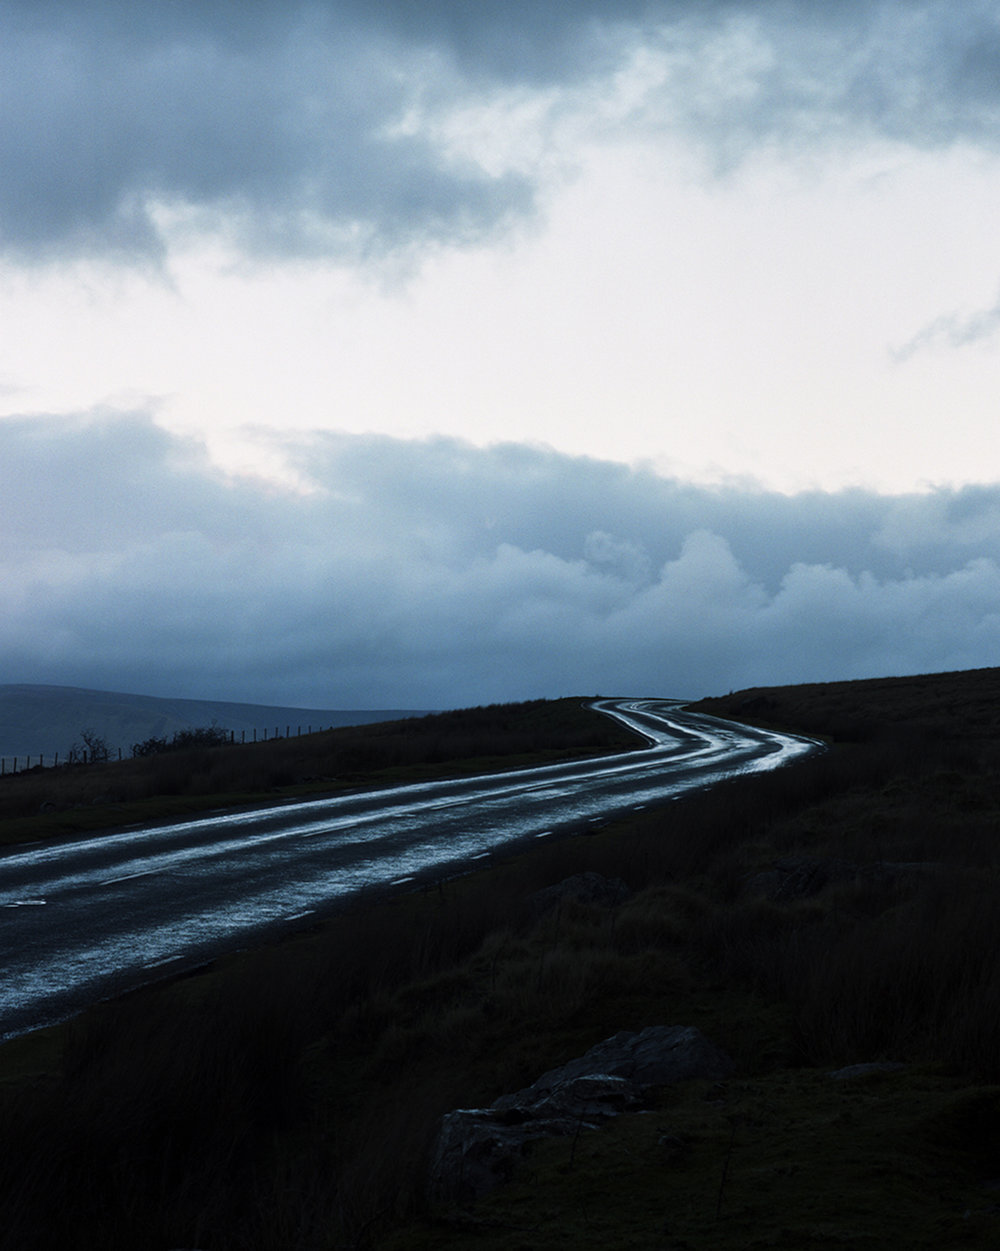 Wales_068_A470_Brecon_Beacons.jpg